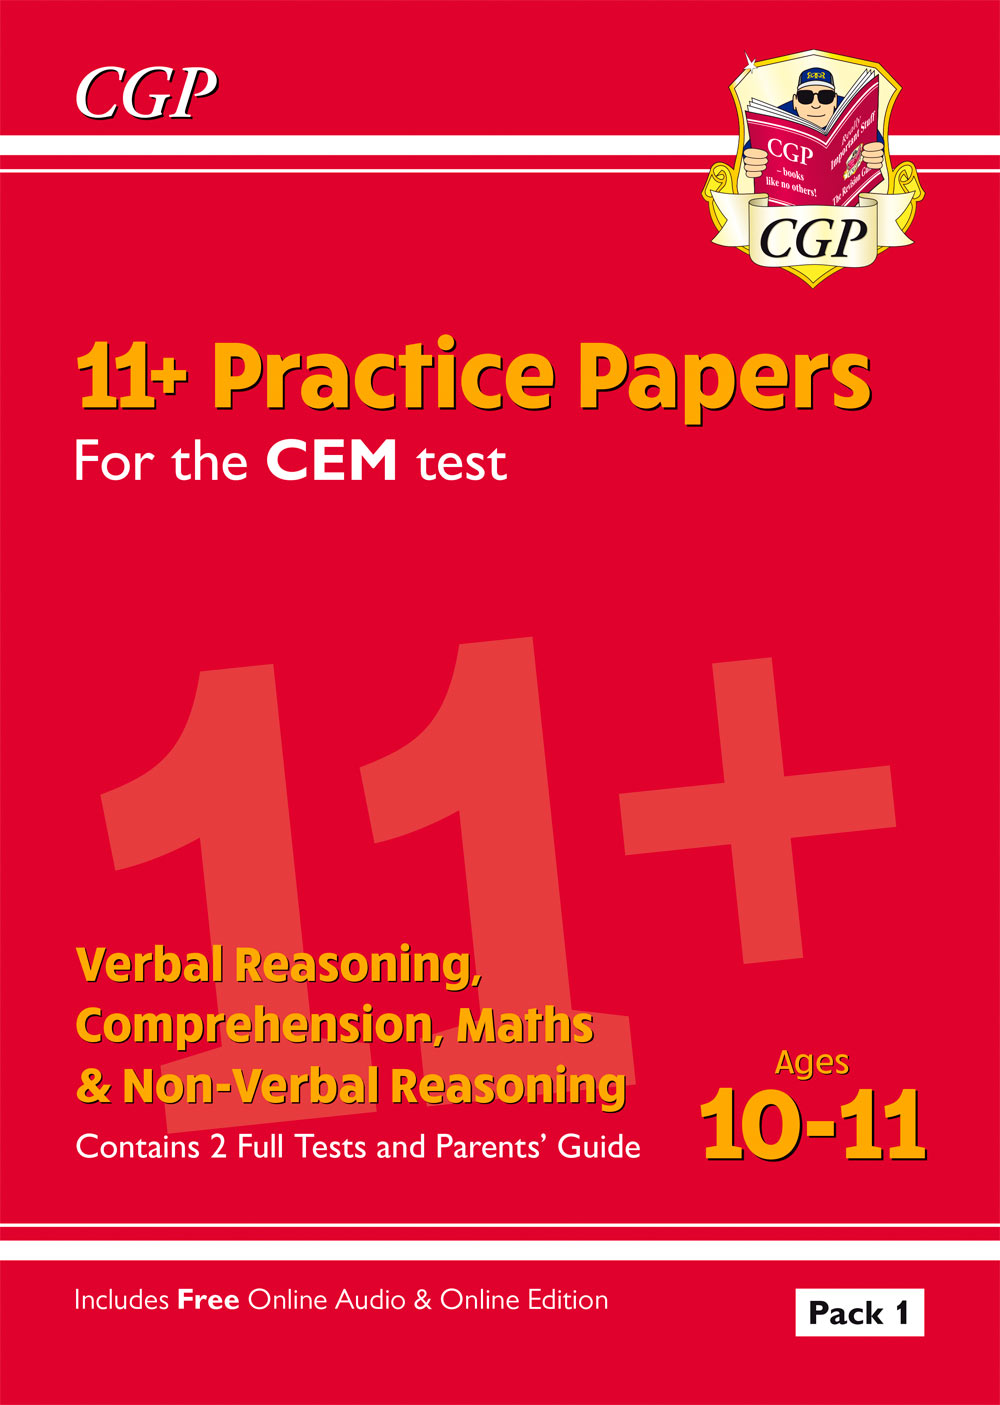 ELPDE2 - New 11+ CEM Practice Papers: Ages 10-11 - Pack 1 (with Parents' Guide & Online Edition)